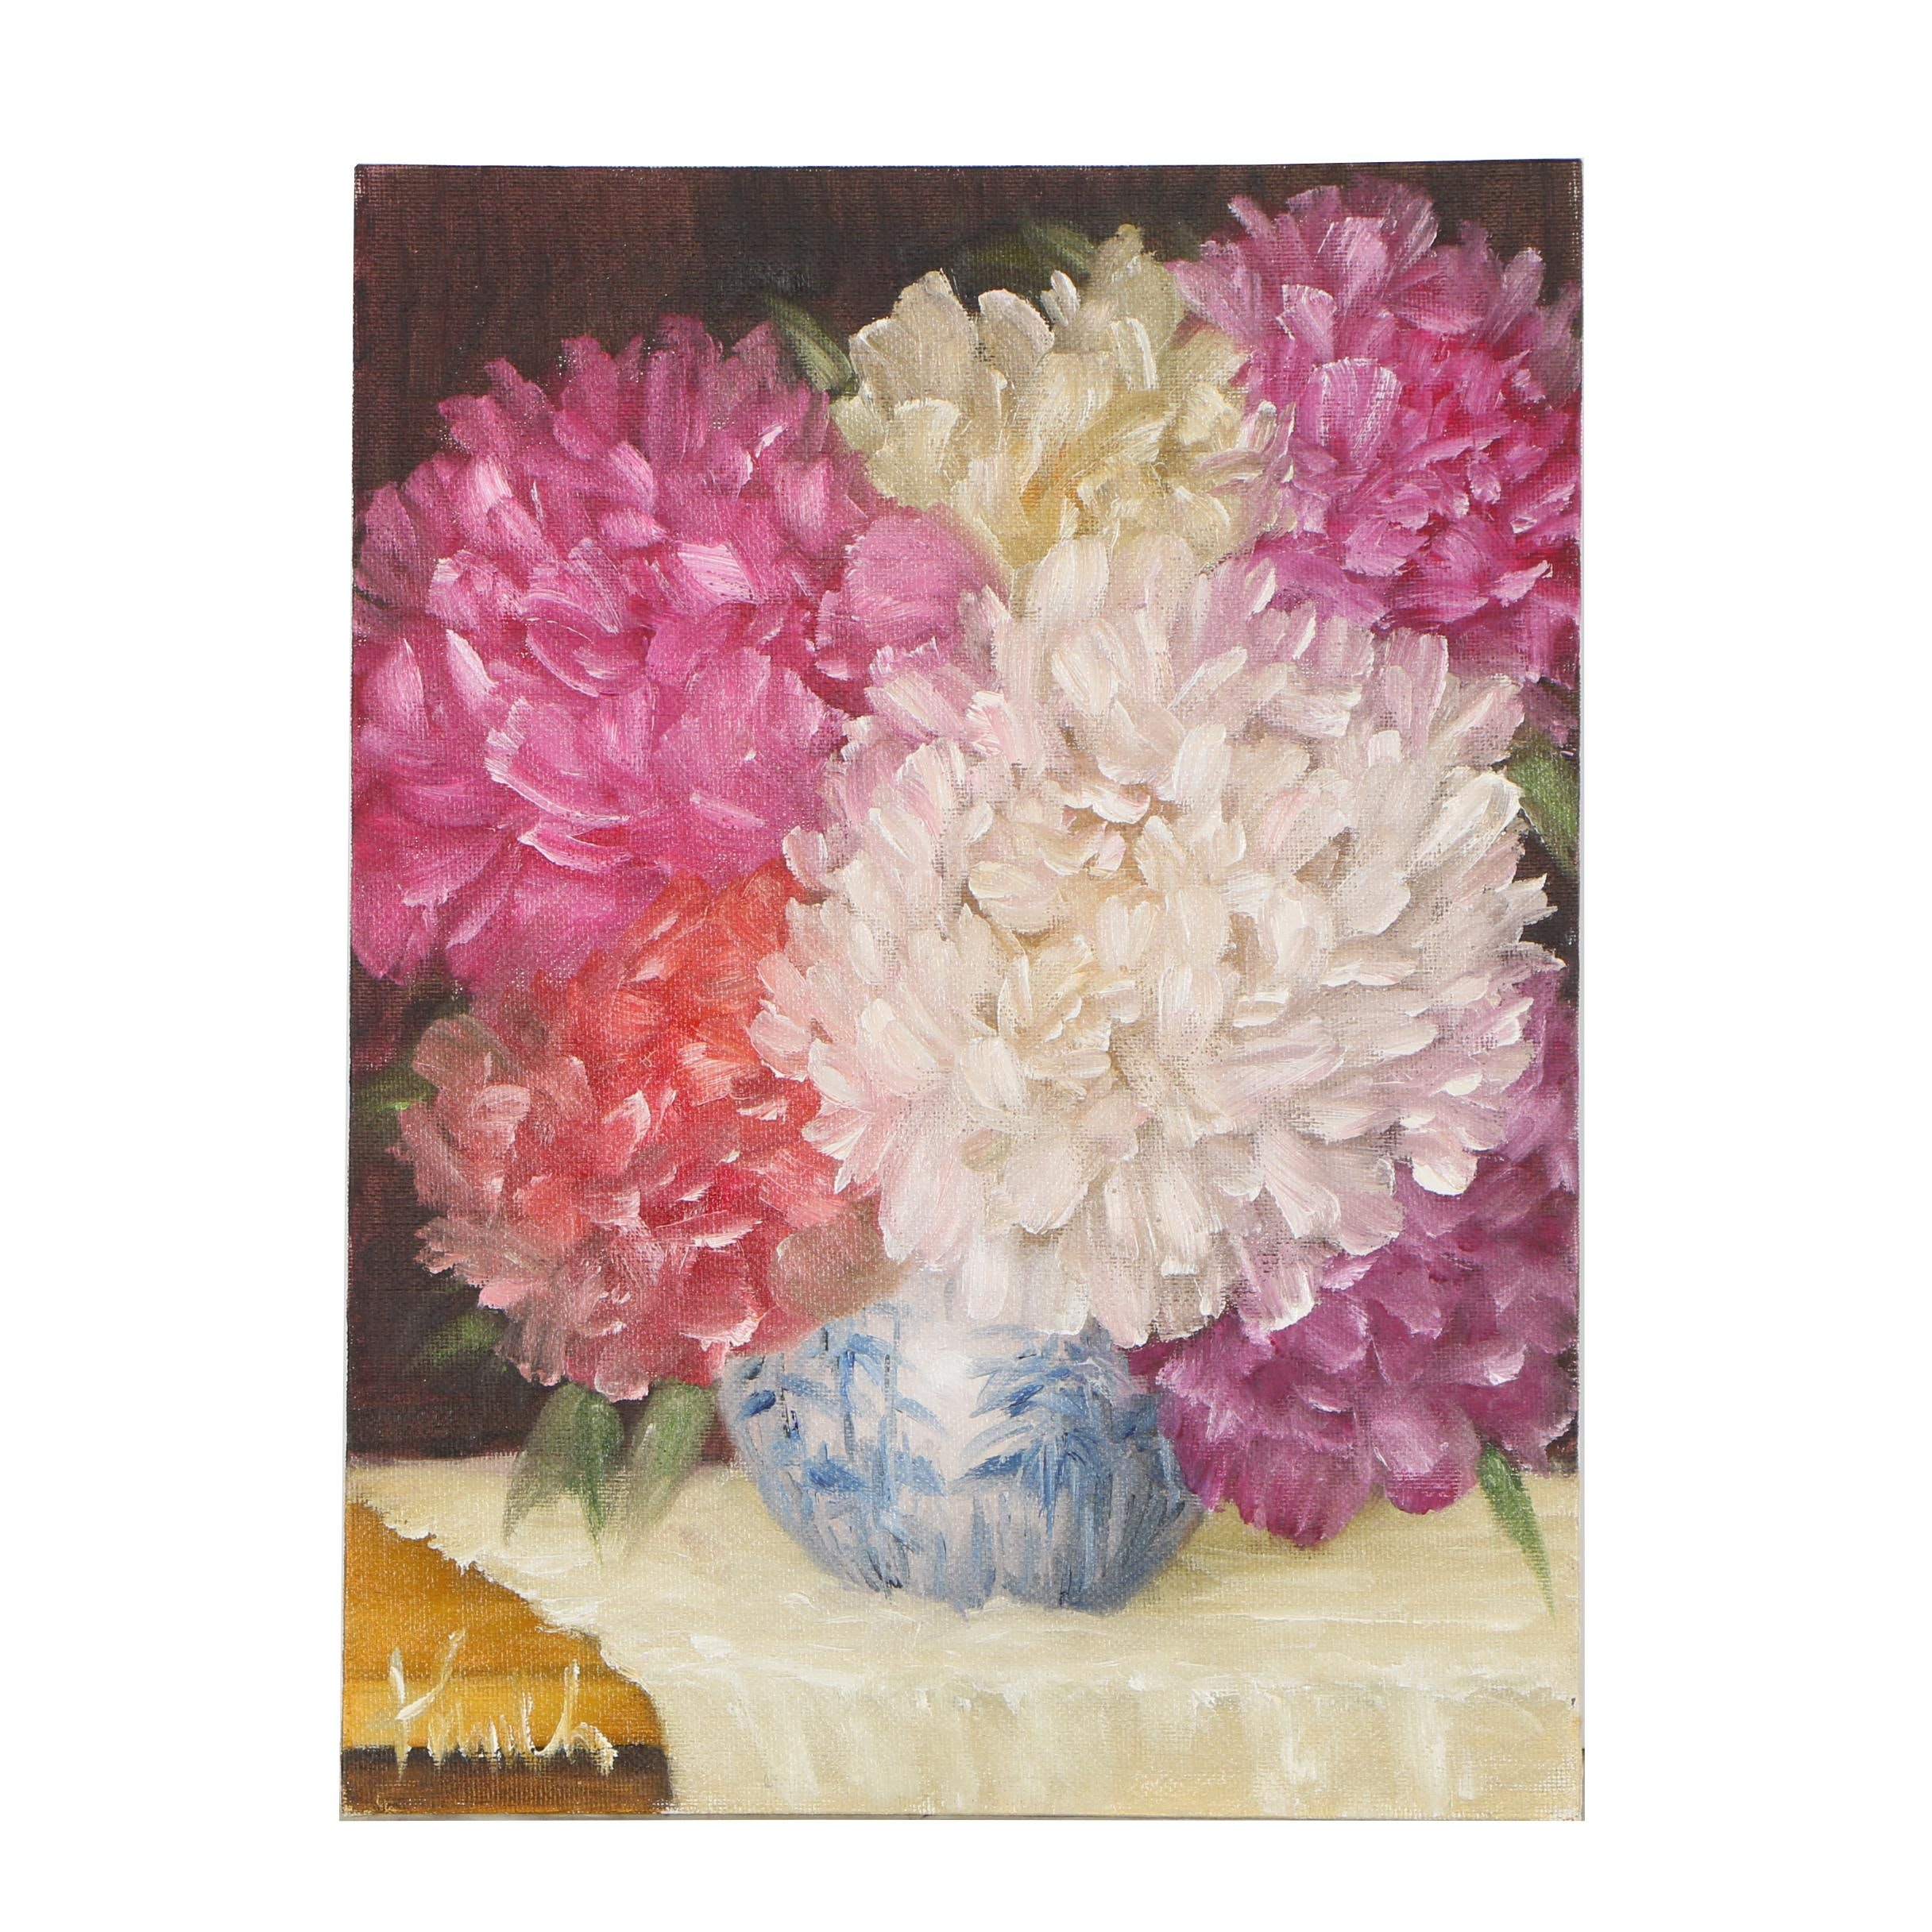 "Thuthuy Tran Oil Painting ""Peonies in Late December"""